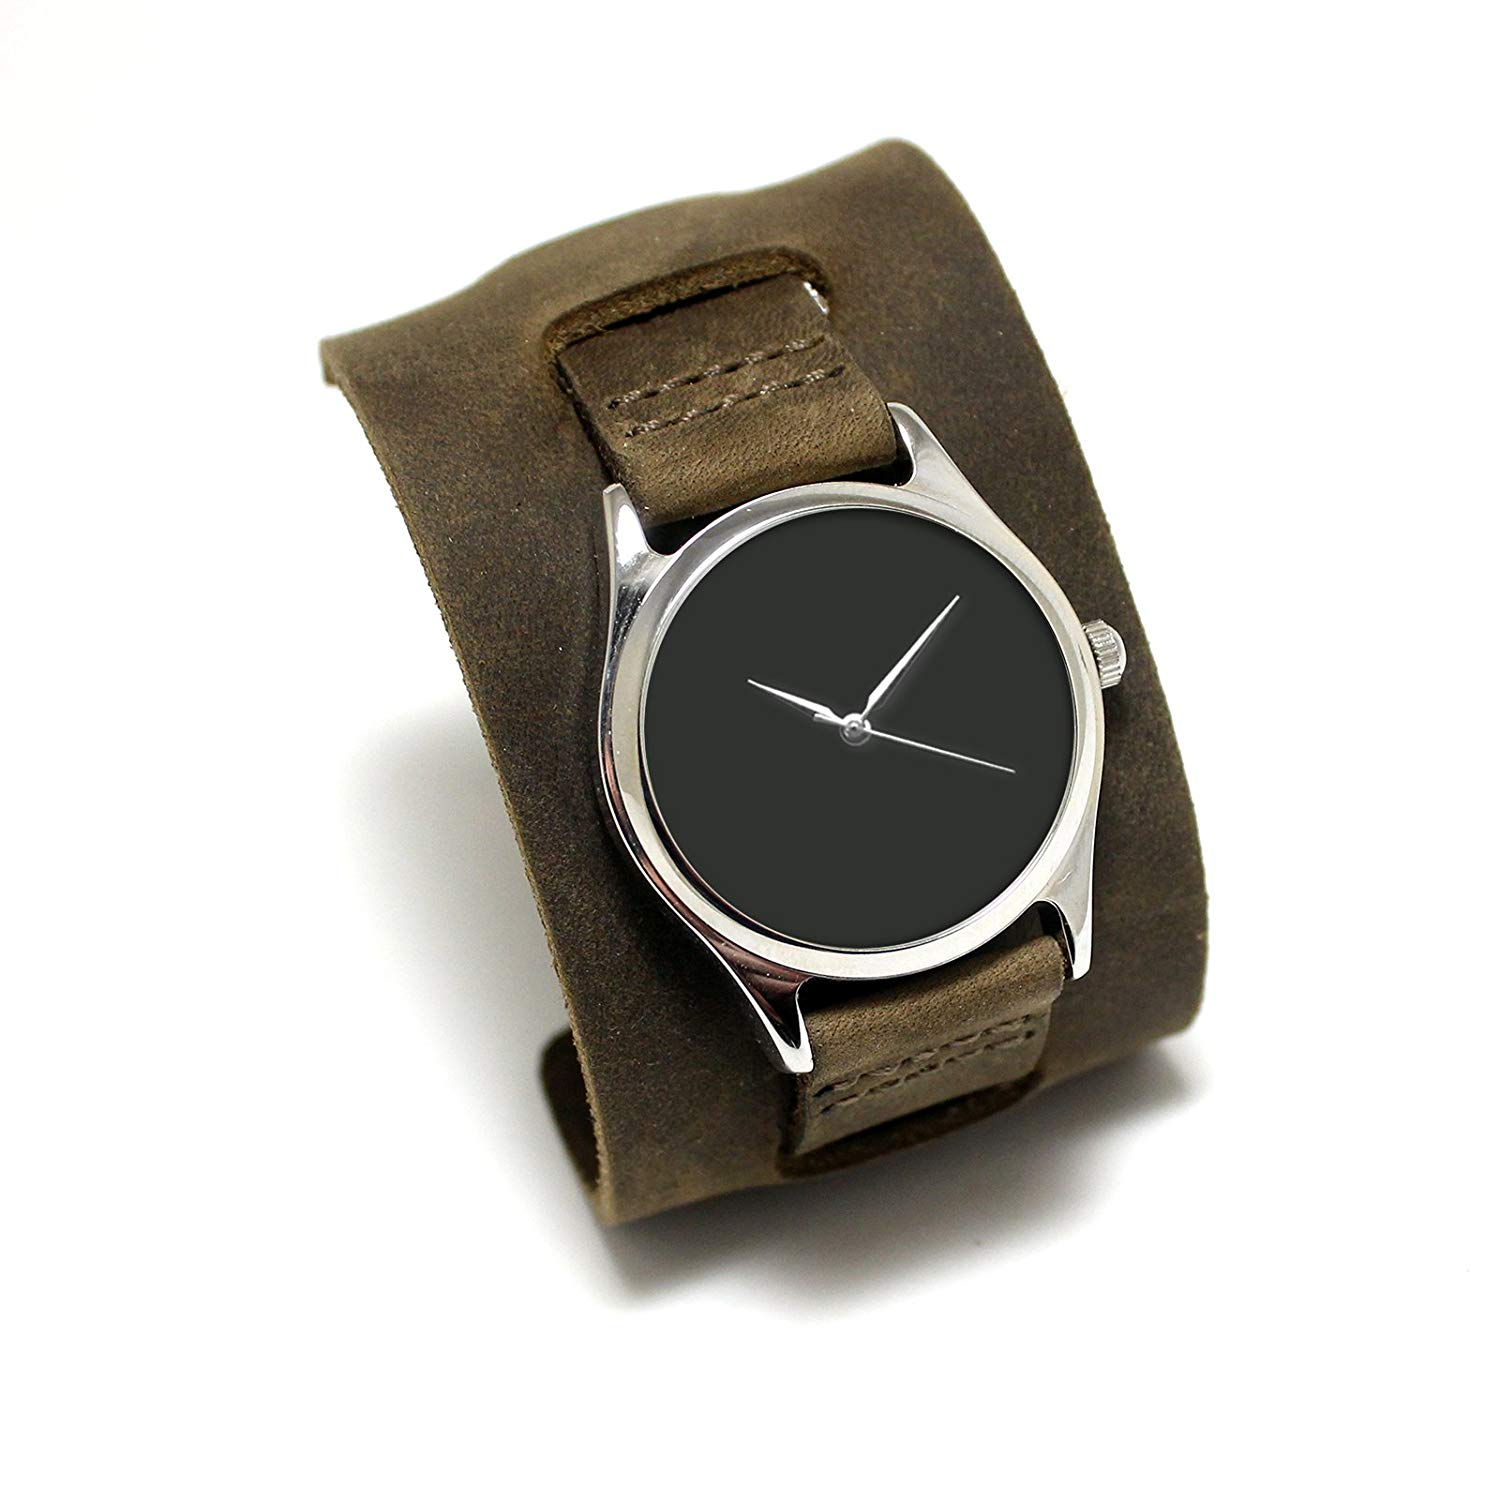 3a4b572a2cd25 Cheap Watches By Size, find Watches By Size deals on line at Alibaba.com